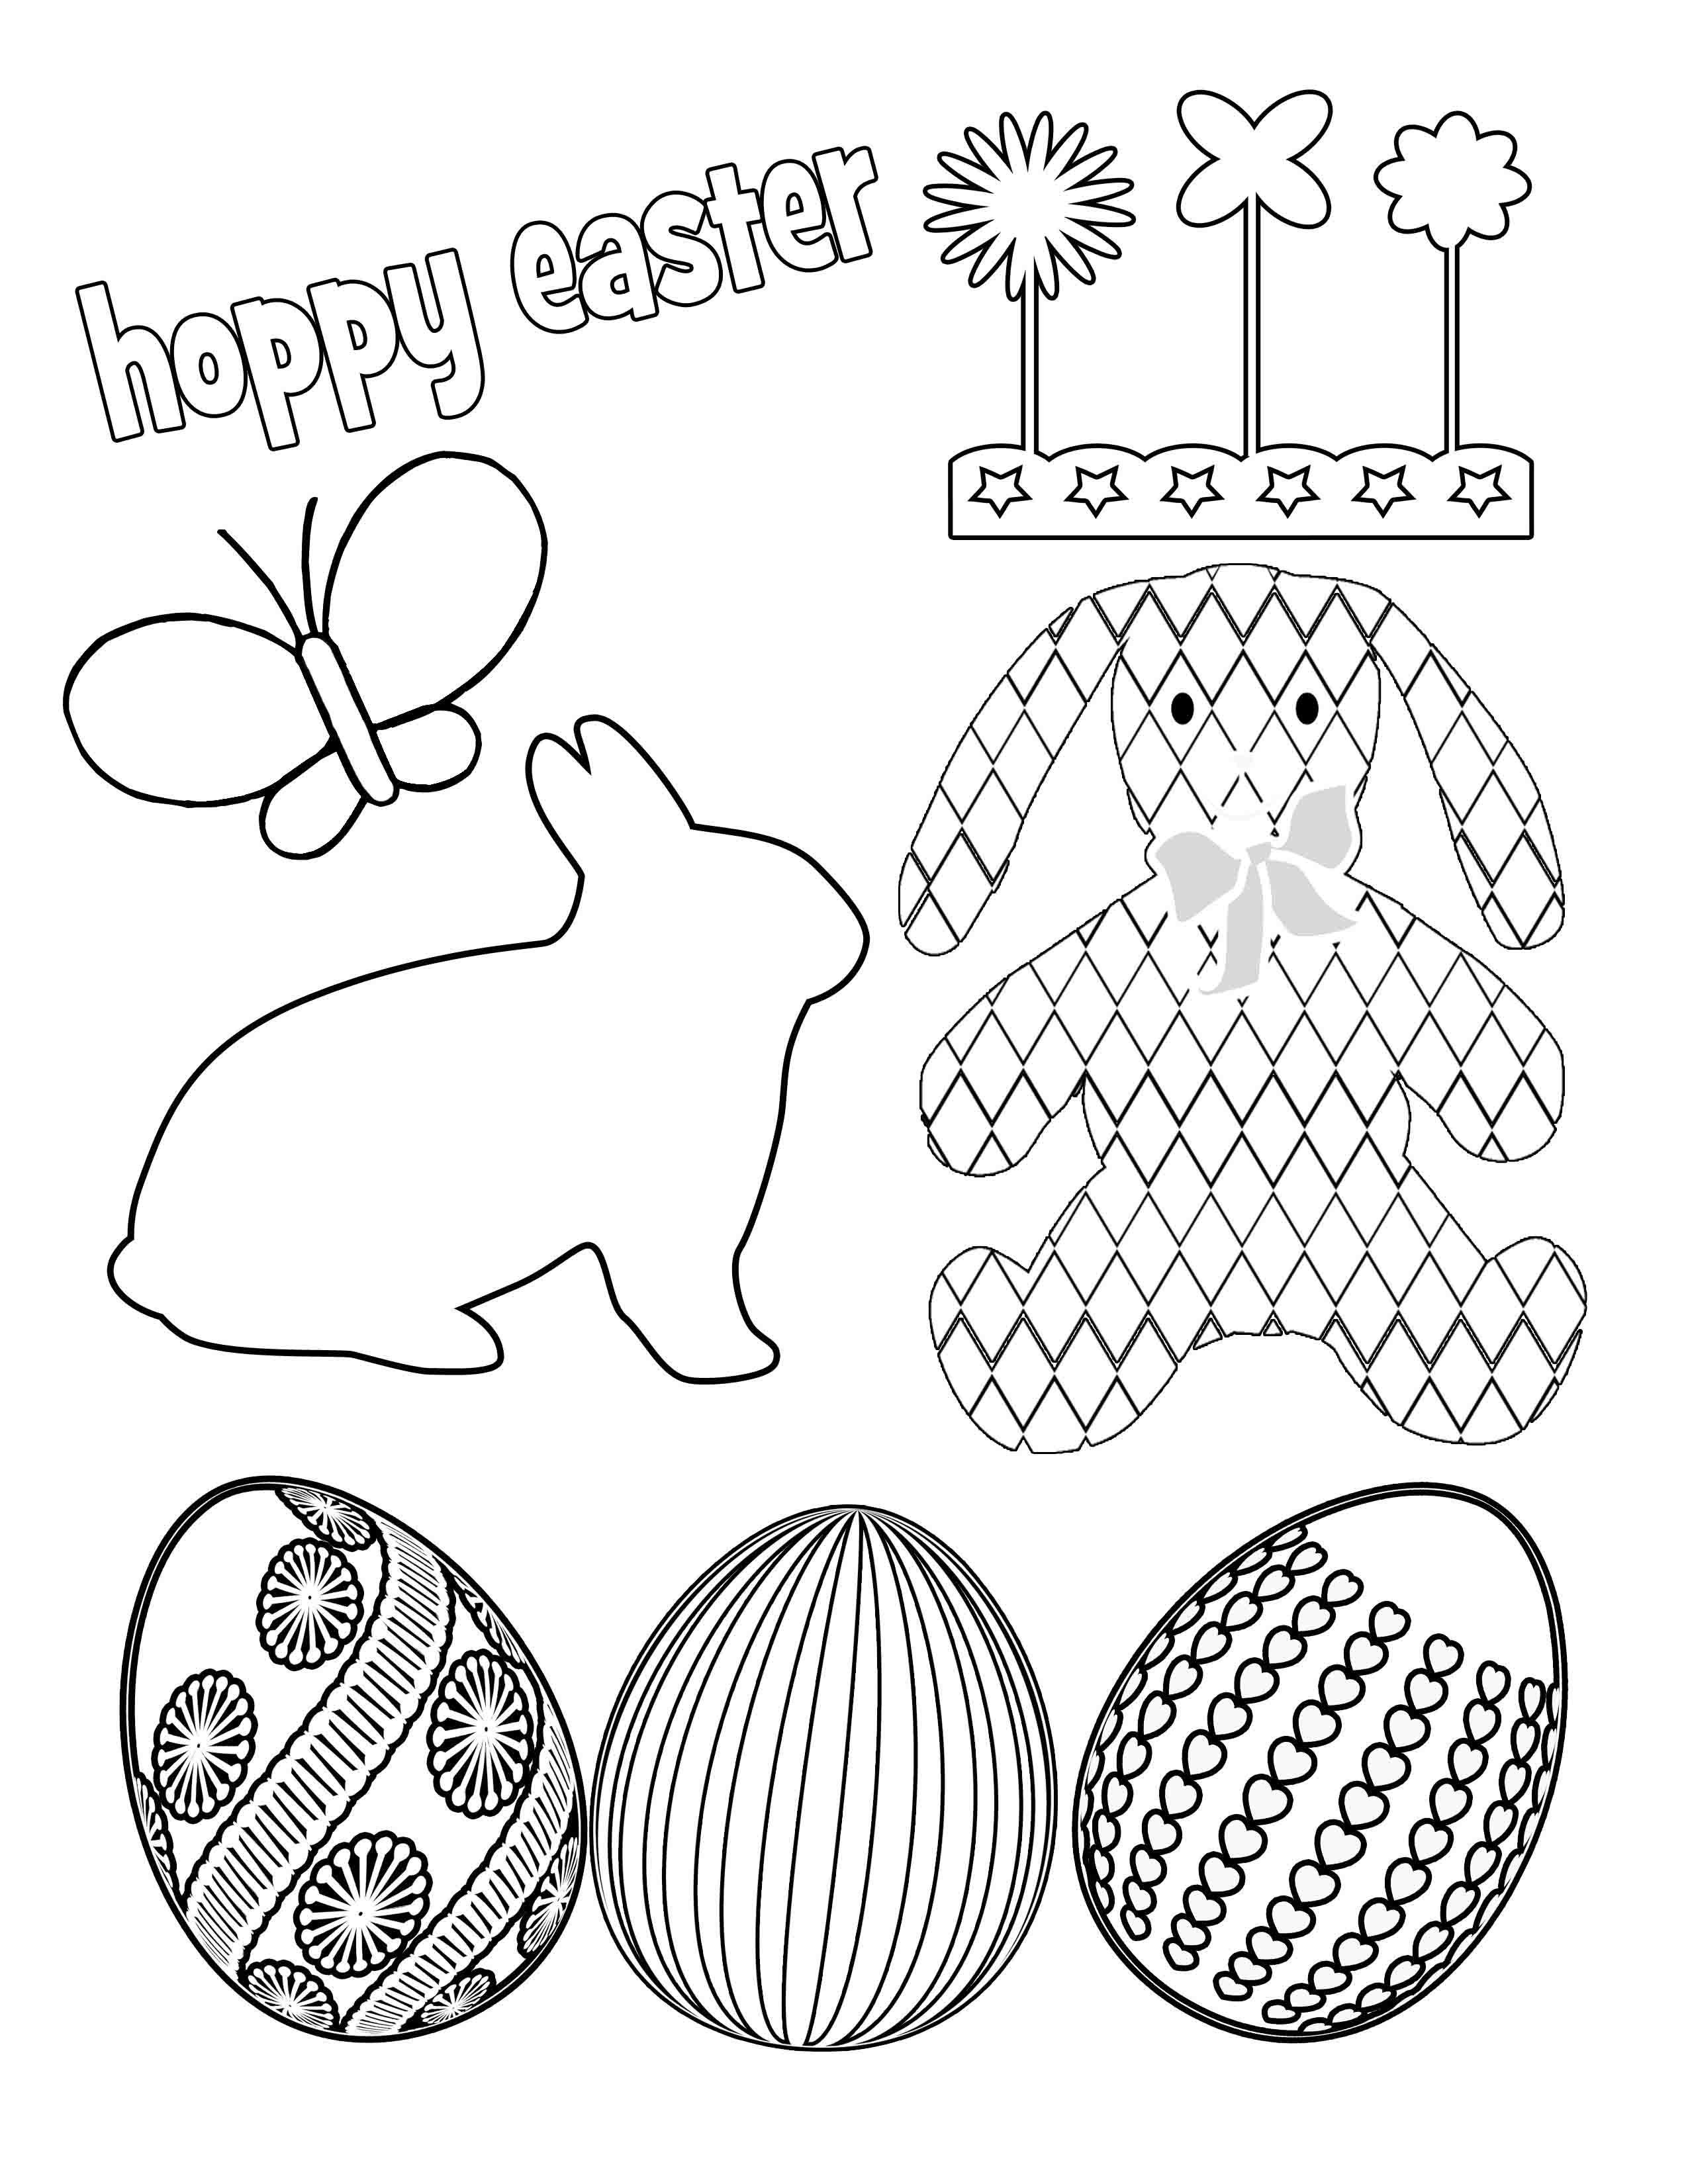 Free printable coloring pages uk - Coloring